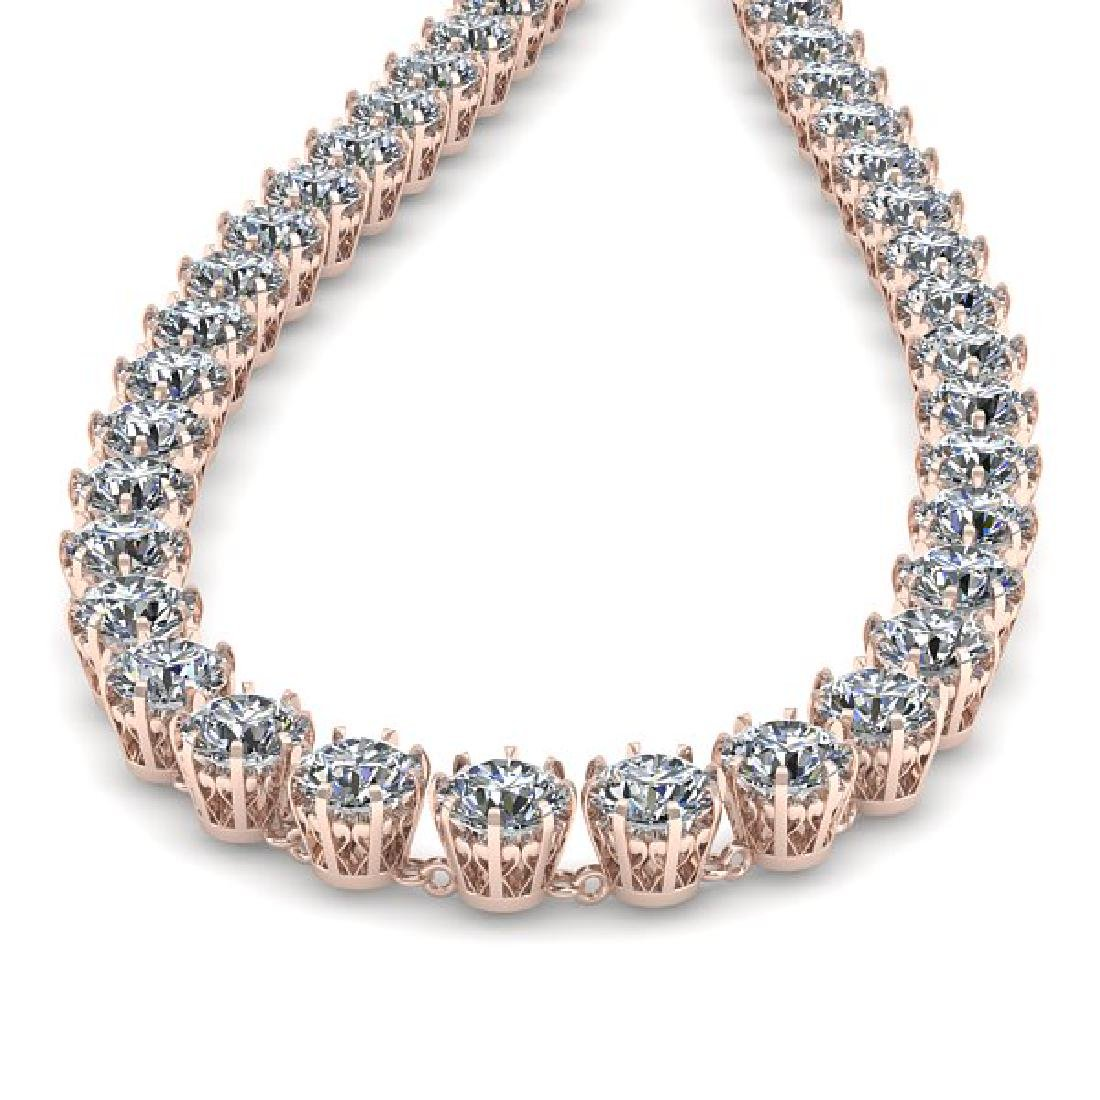 30 CTW SI Certified Diamond Necklace 14K Rose Gold - 2